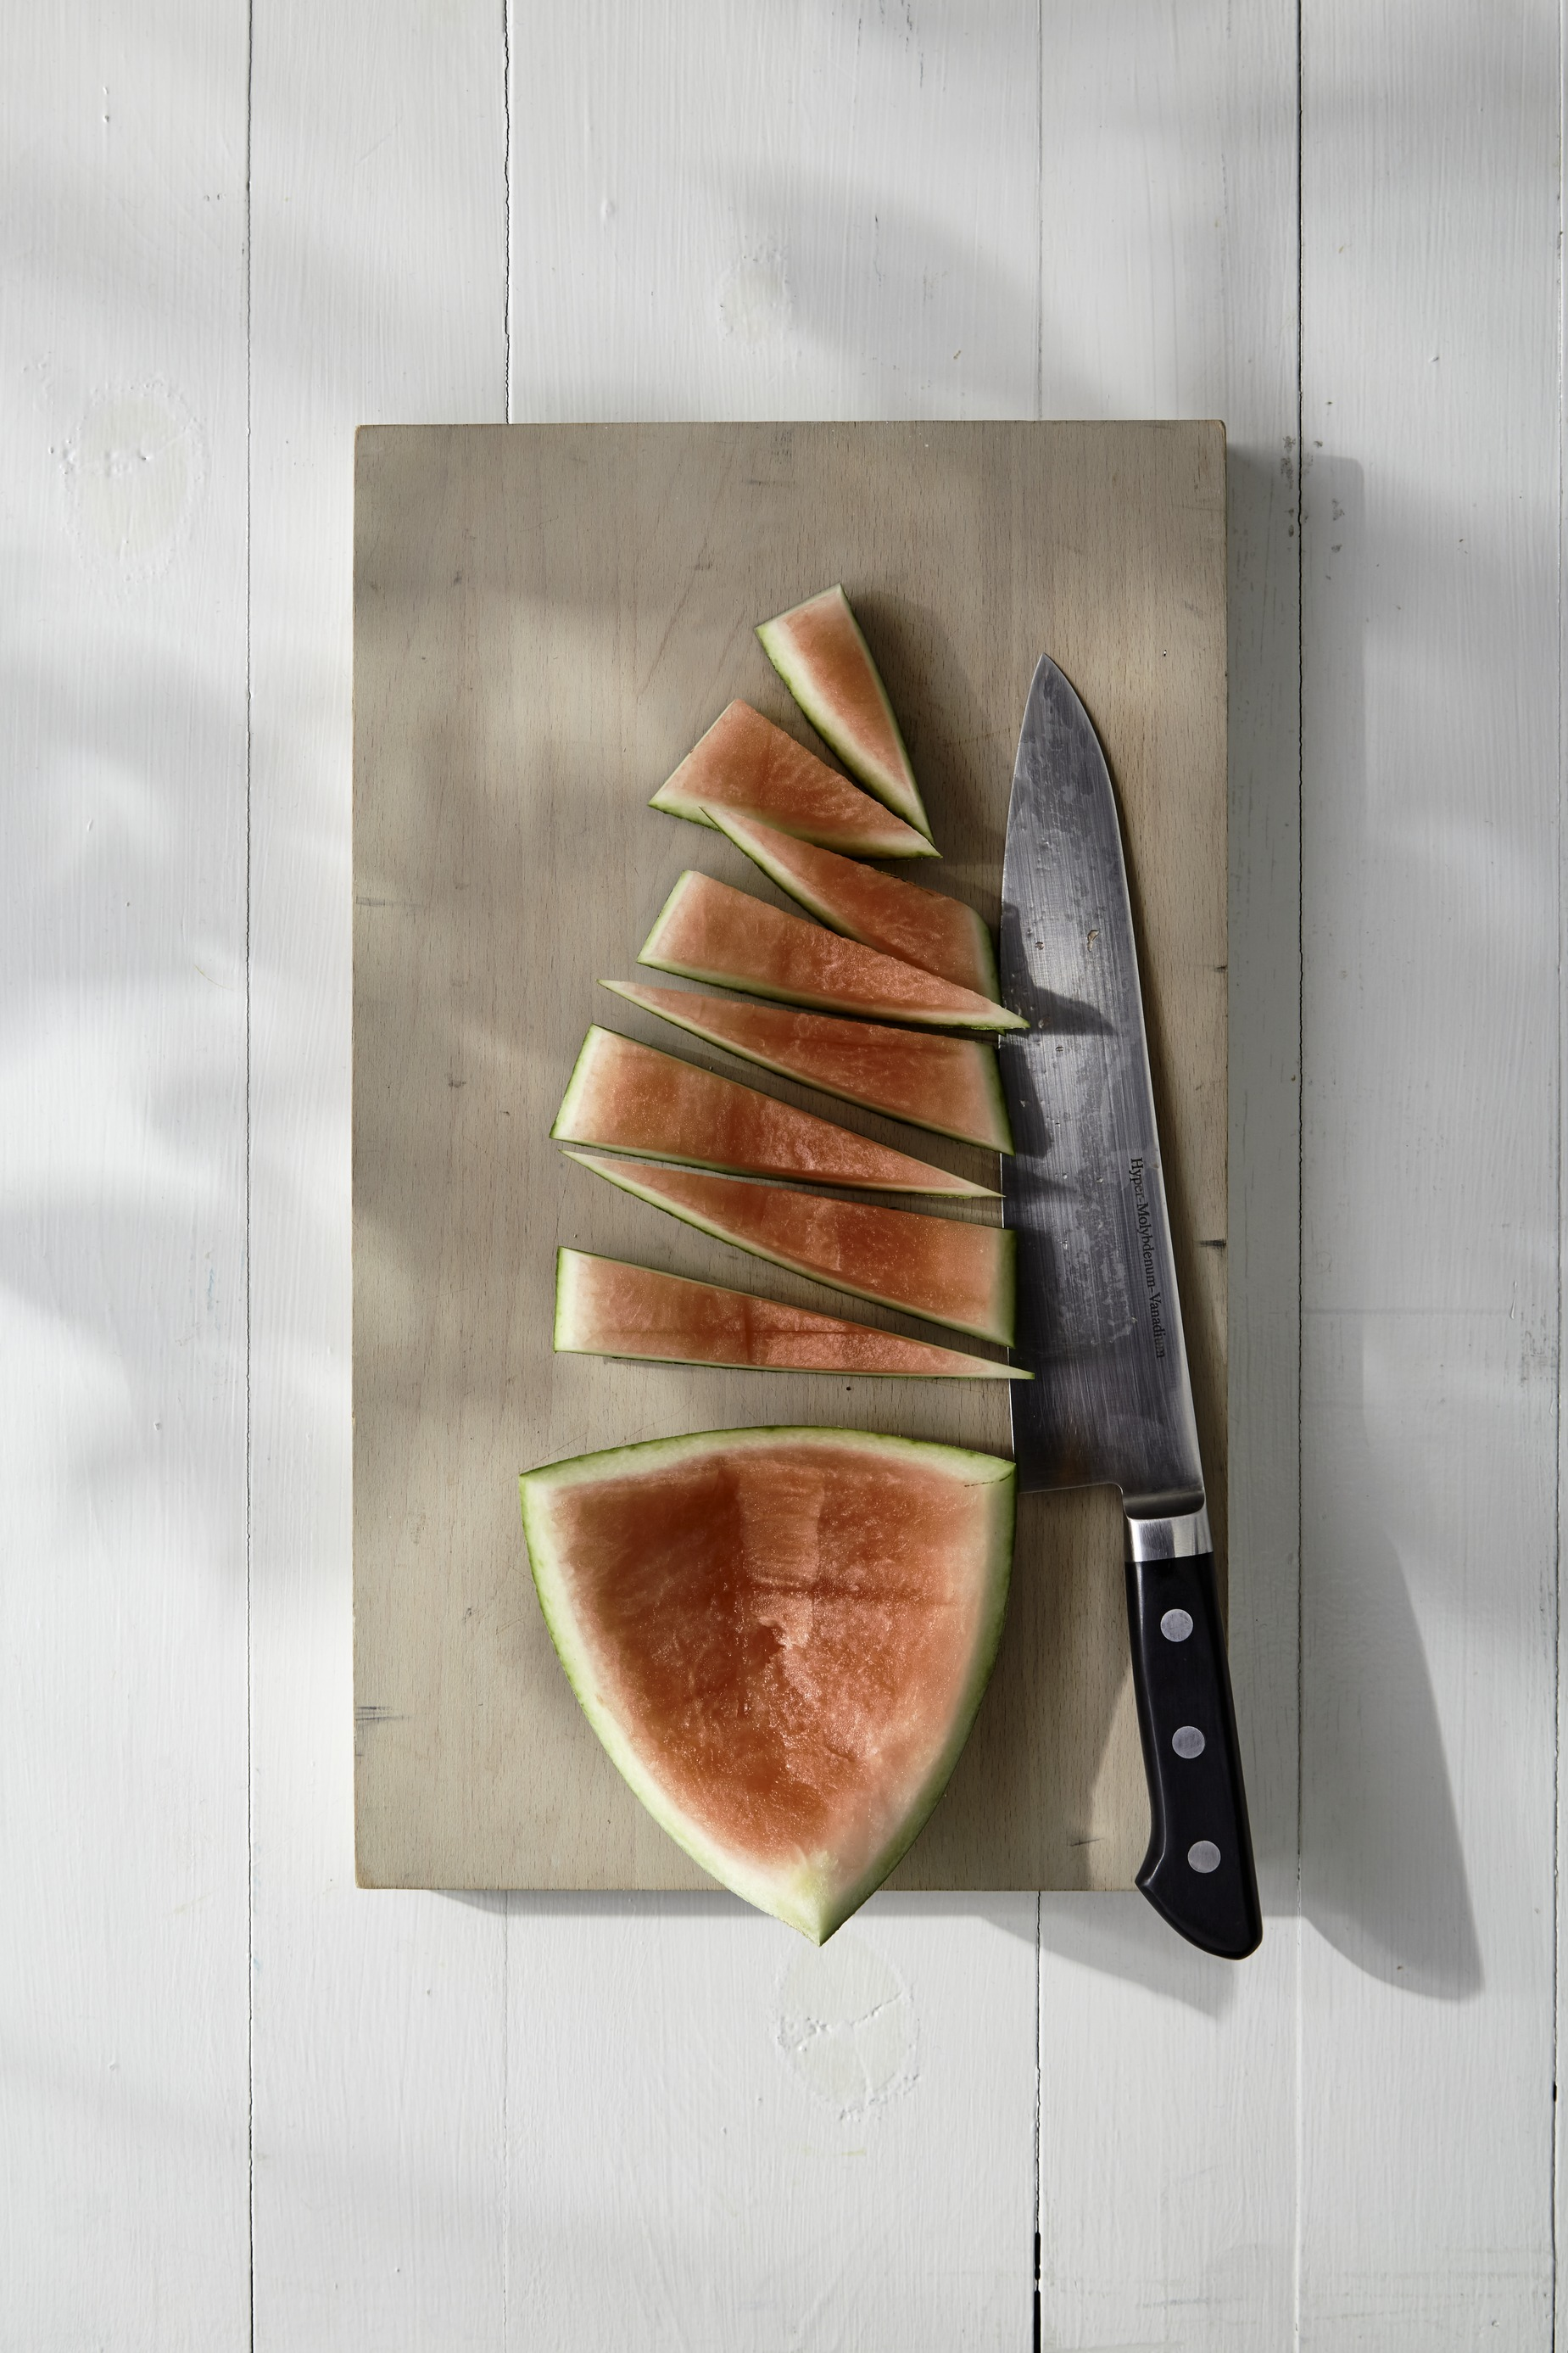 cutting up watermelon rind